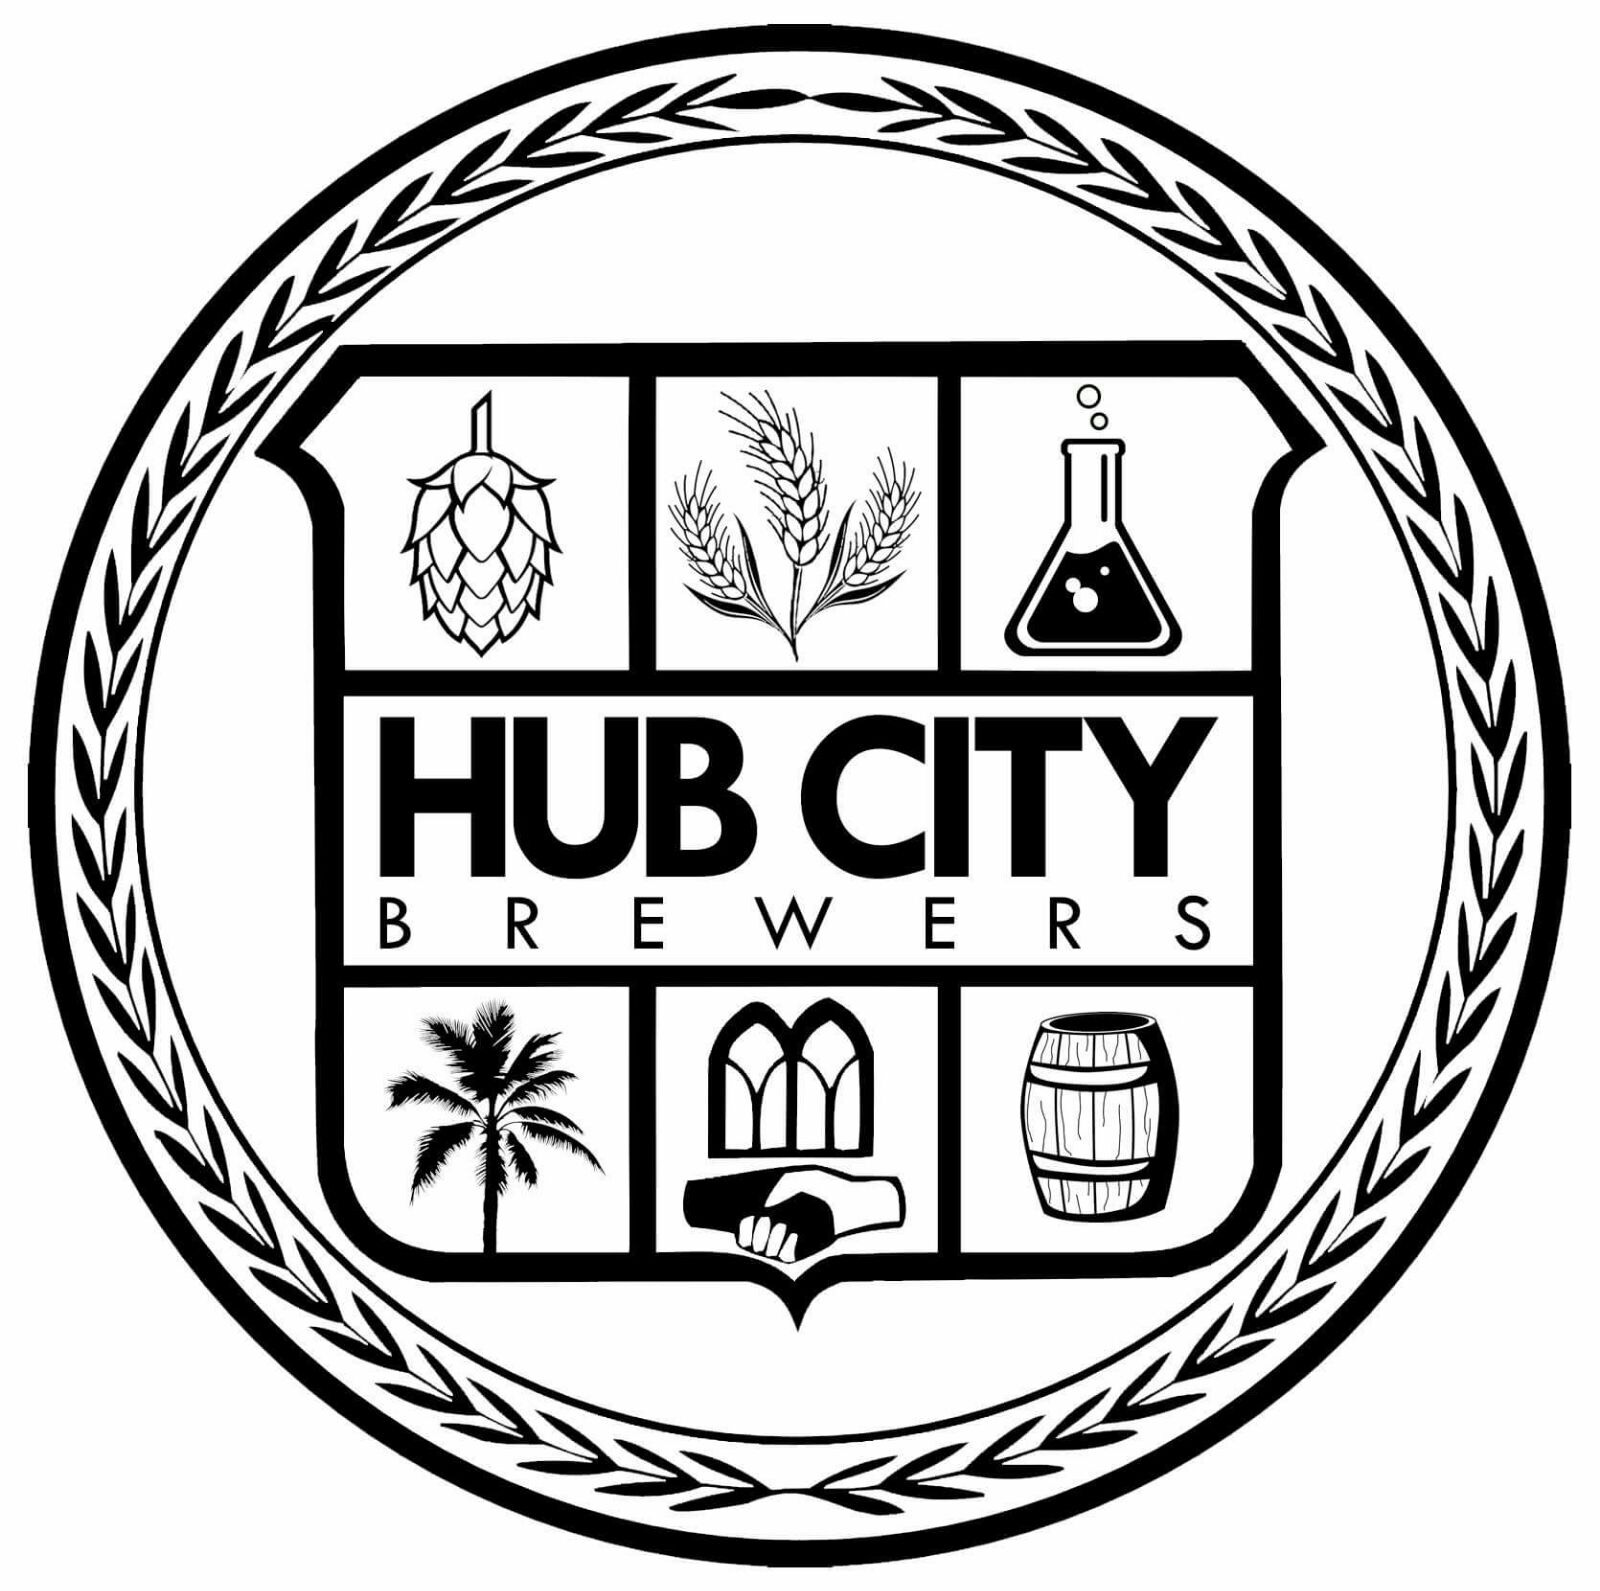 Hub City Brewers